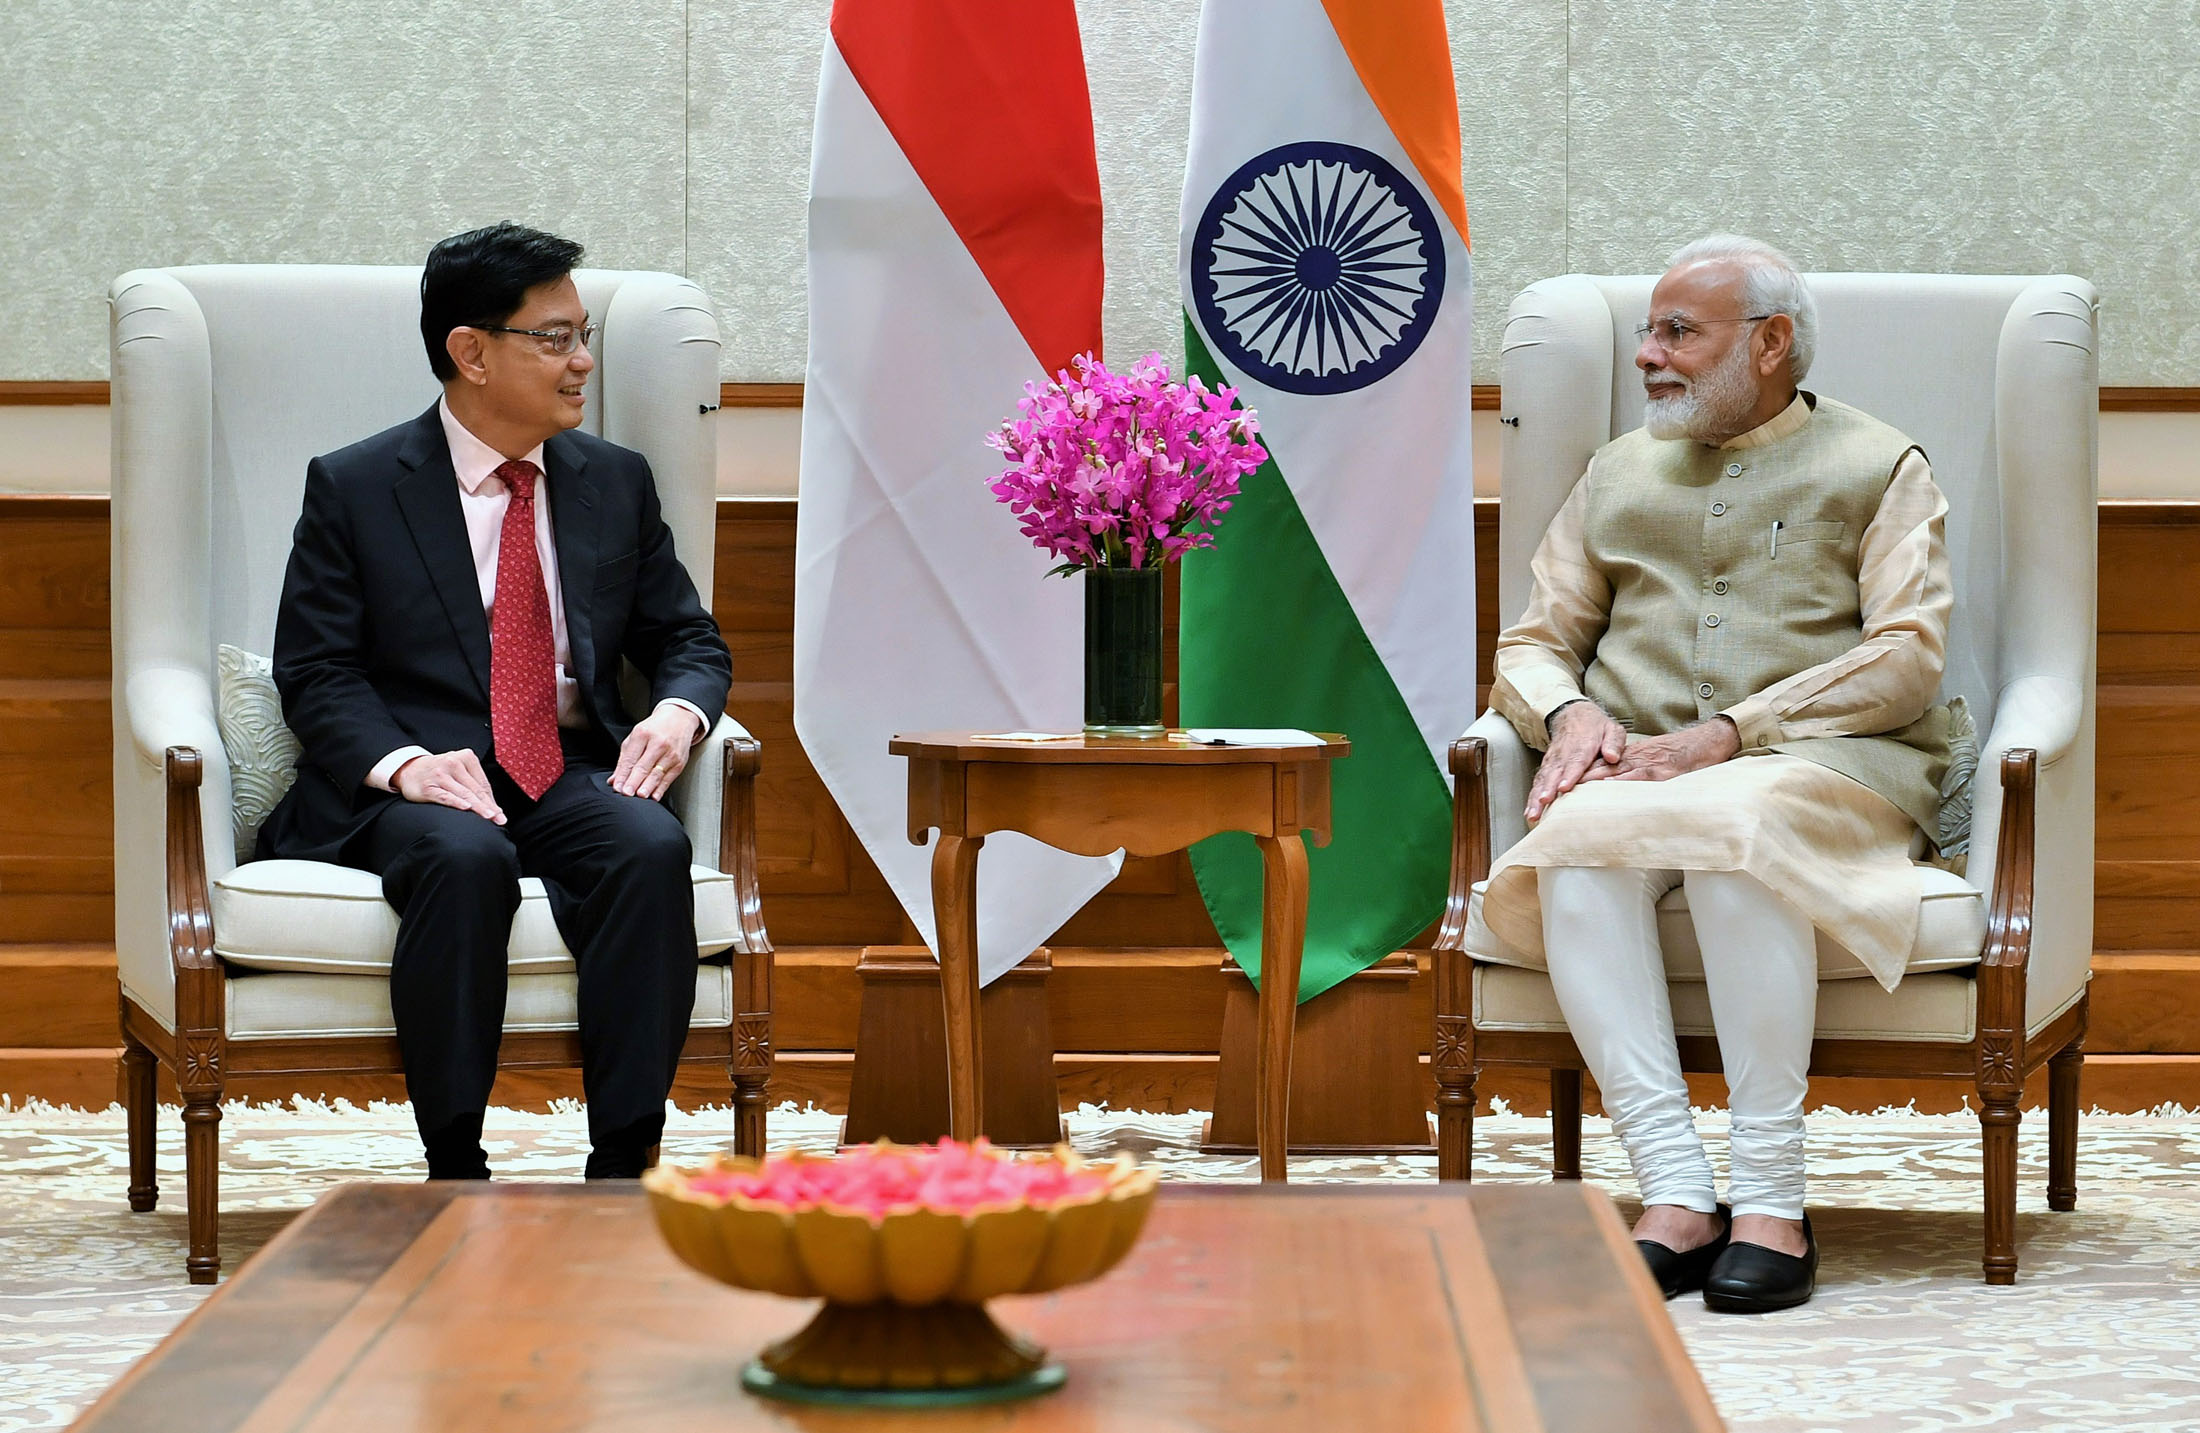 Deputy PM and Minister for Finance of Singapore Mr. Heng Swee Keat calls on PM